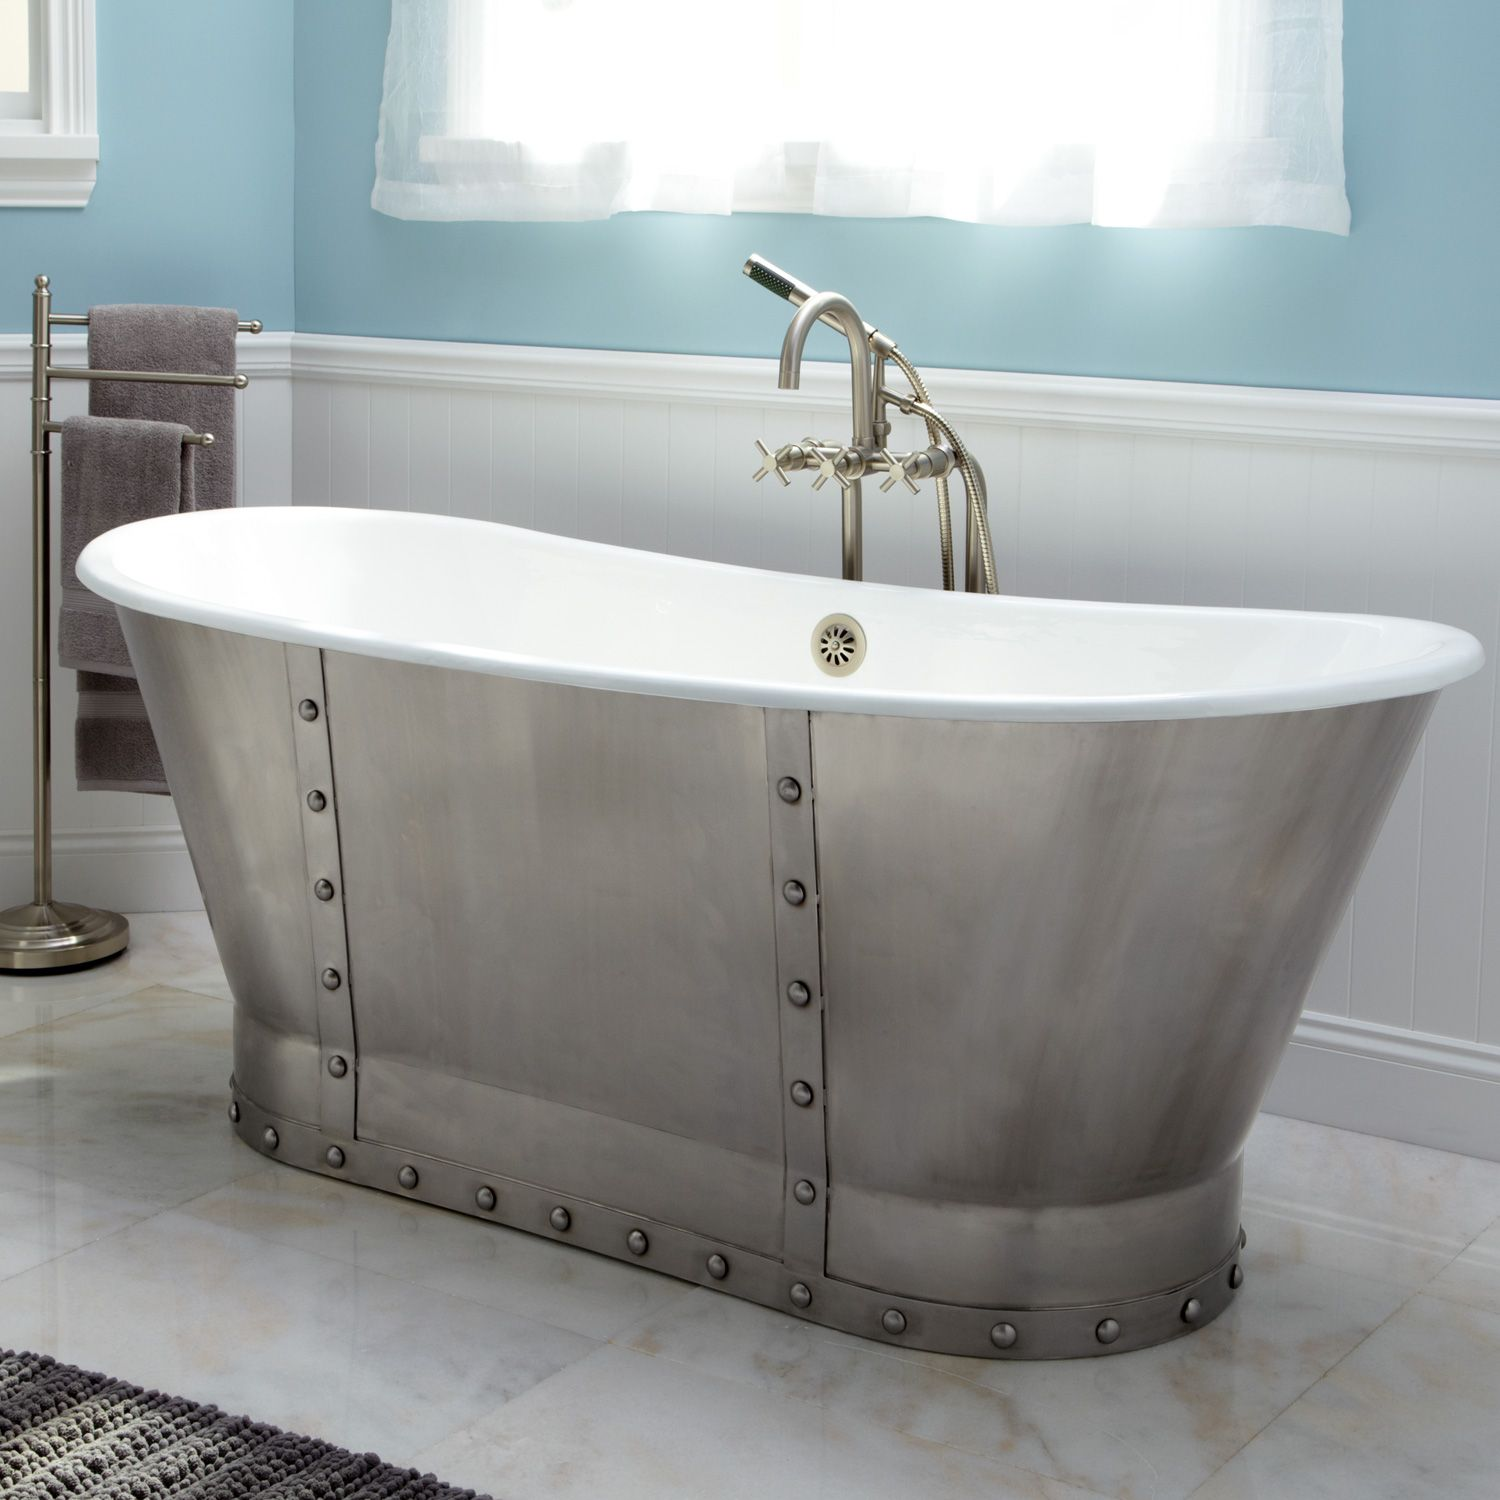 Stainless steel bathtubs bateau tub with riveted stainless steel skirt signature hardware